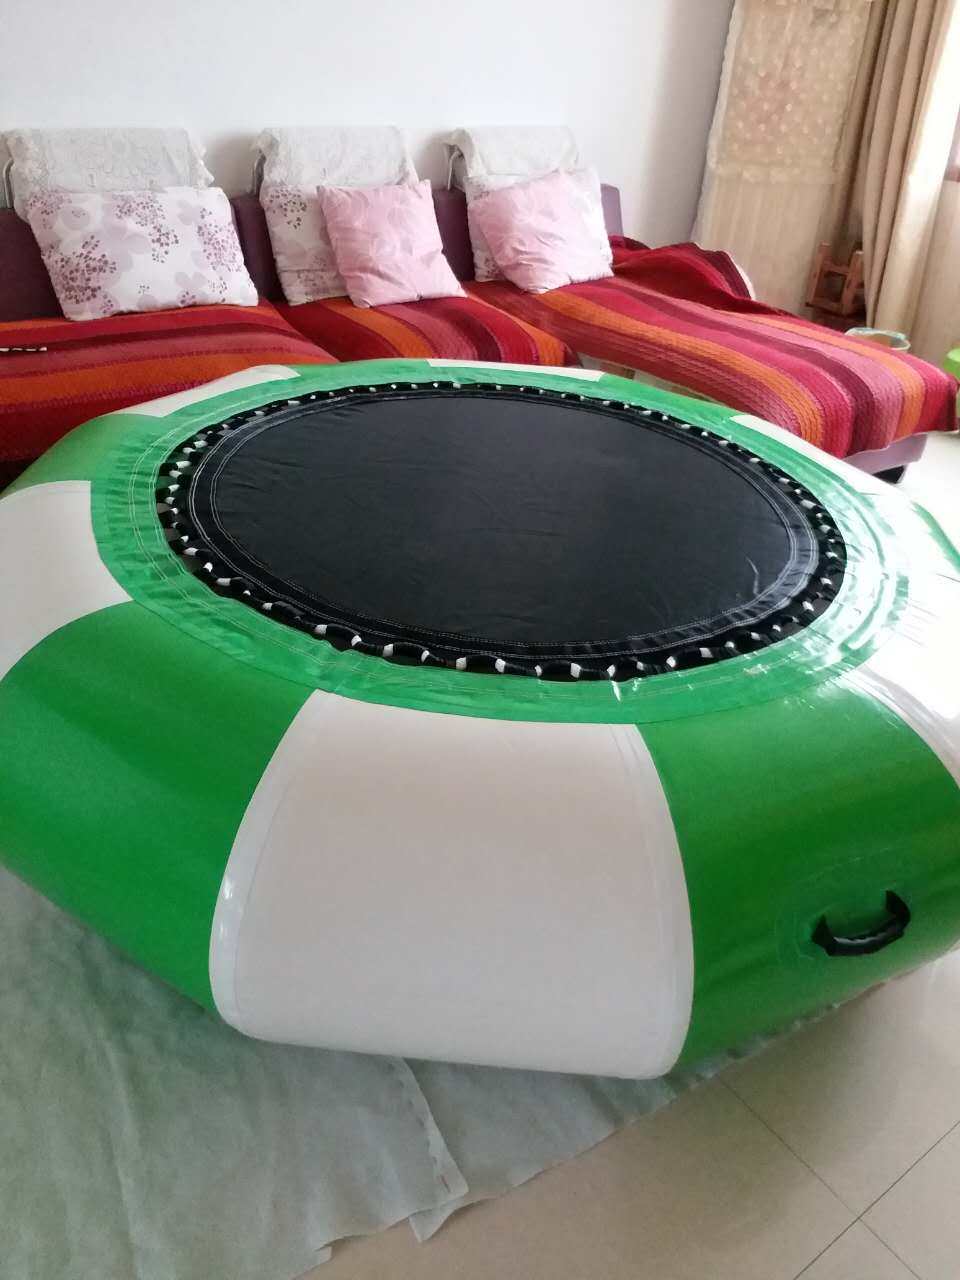 Inflatable Trampoline With Slide Inflatable Trampoline Inflatable Water Toys For Chinldren And Adults In The Yard And The Water inflatable water game inflatable water trampoline for kids game